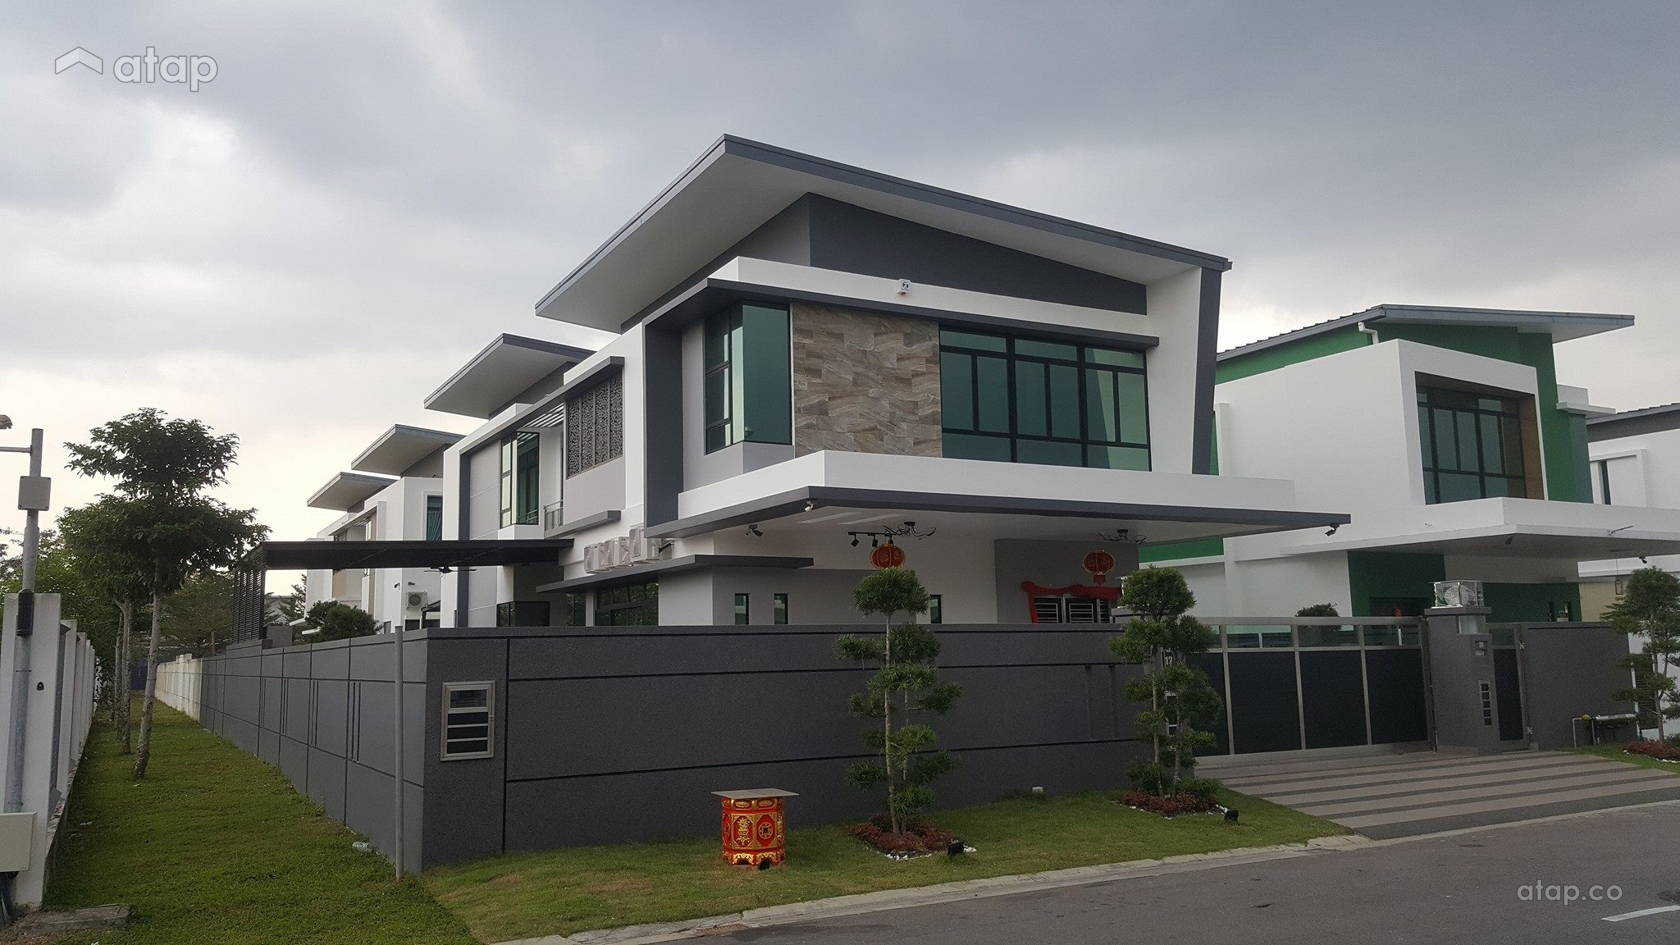 Contemporary Modern Exterior Bungalow Design Ideas Photos Malaysia Atap Co